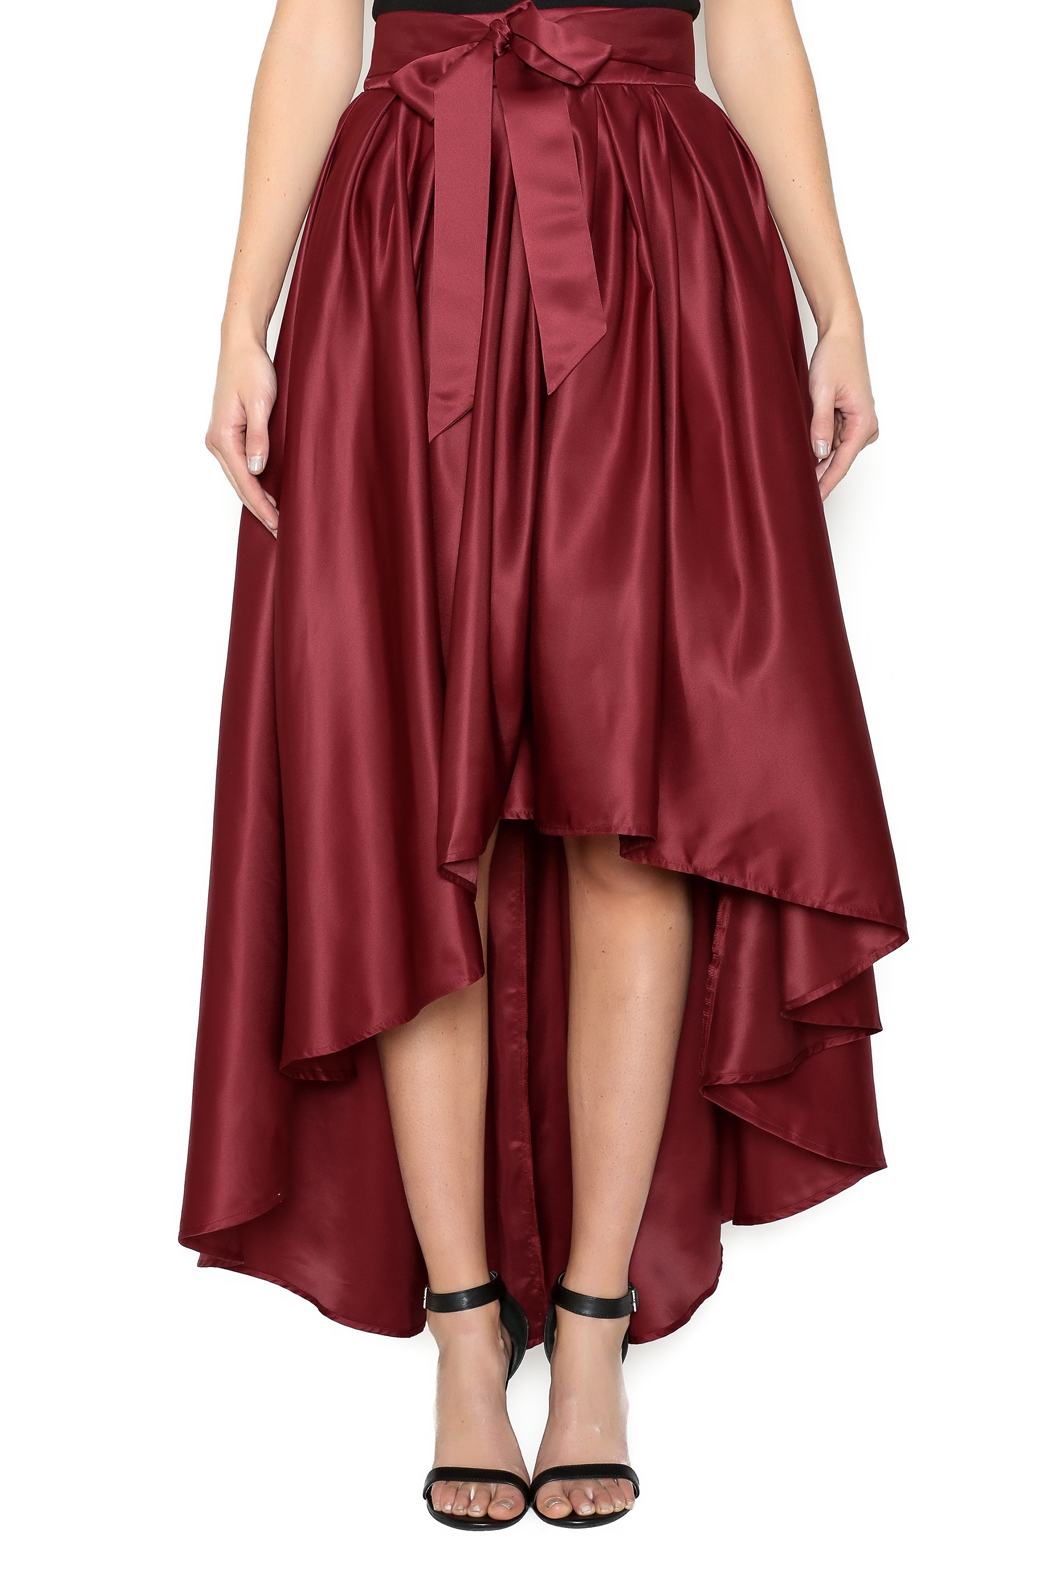 cq by cq bow tie midi skirt from manhattan by dor l dor